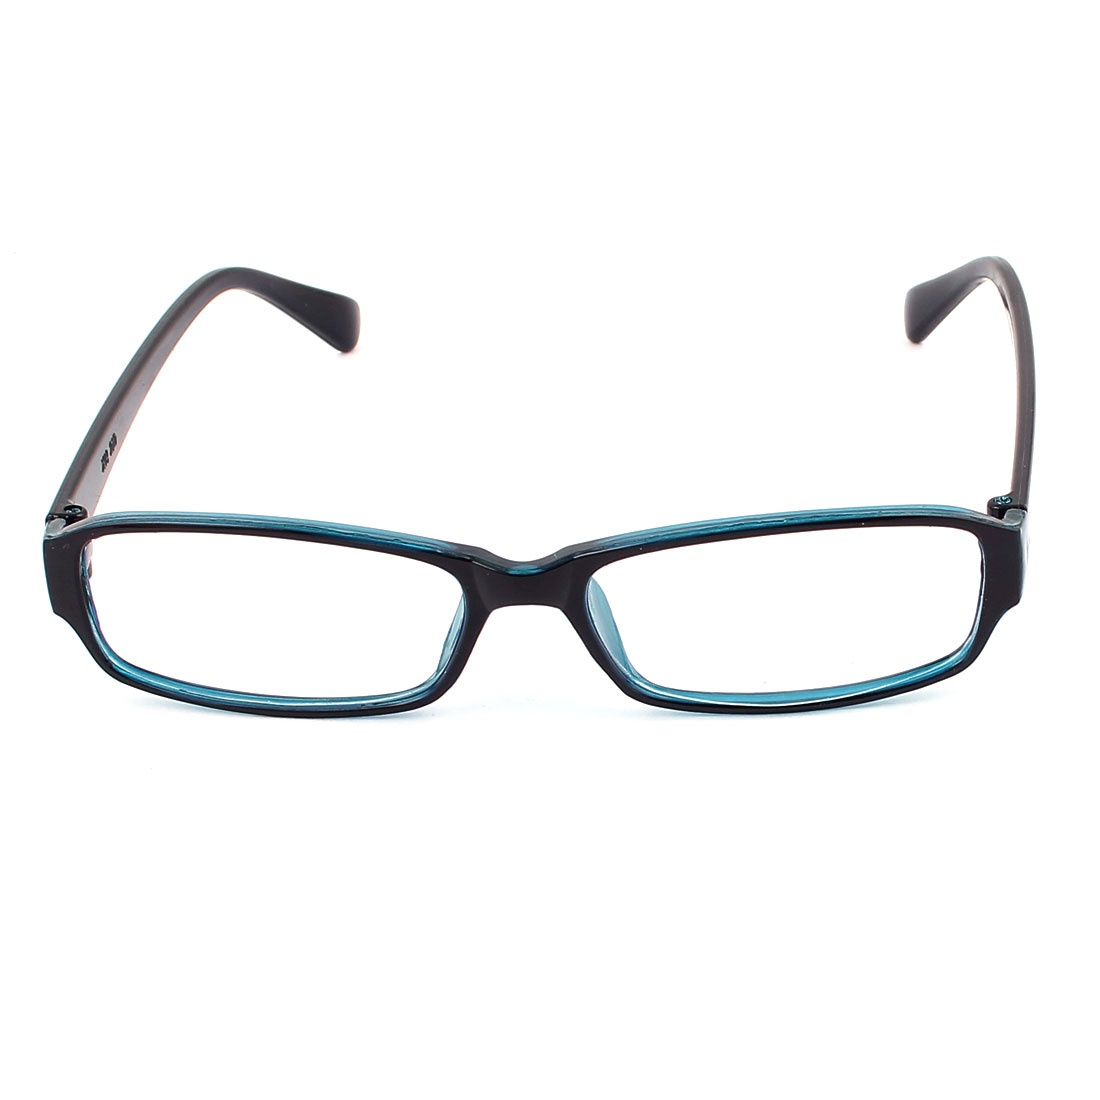 Clear Lens Full Rim Single Bridge Eyewear Plain Plano Glasses Spectacles